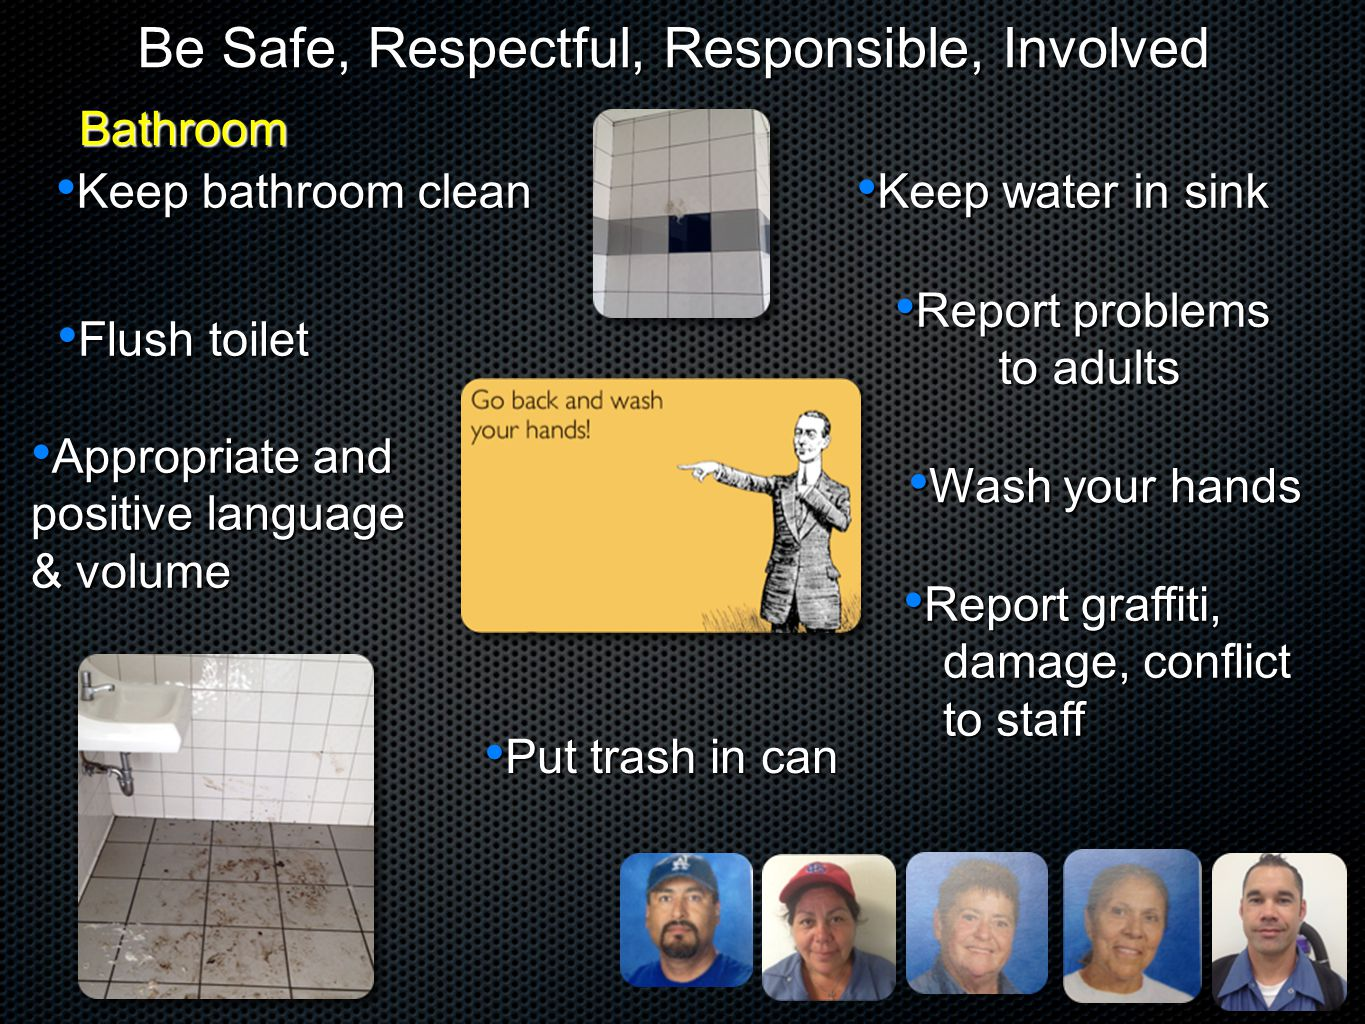 Be Safe, Respectful, Responsible, Involved Keep water in sink Keep water in sink Flush toilet Flush toilet Report problems Report problems to adults t